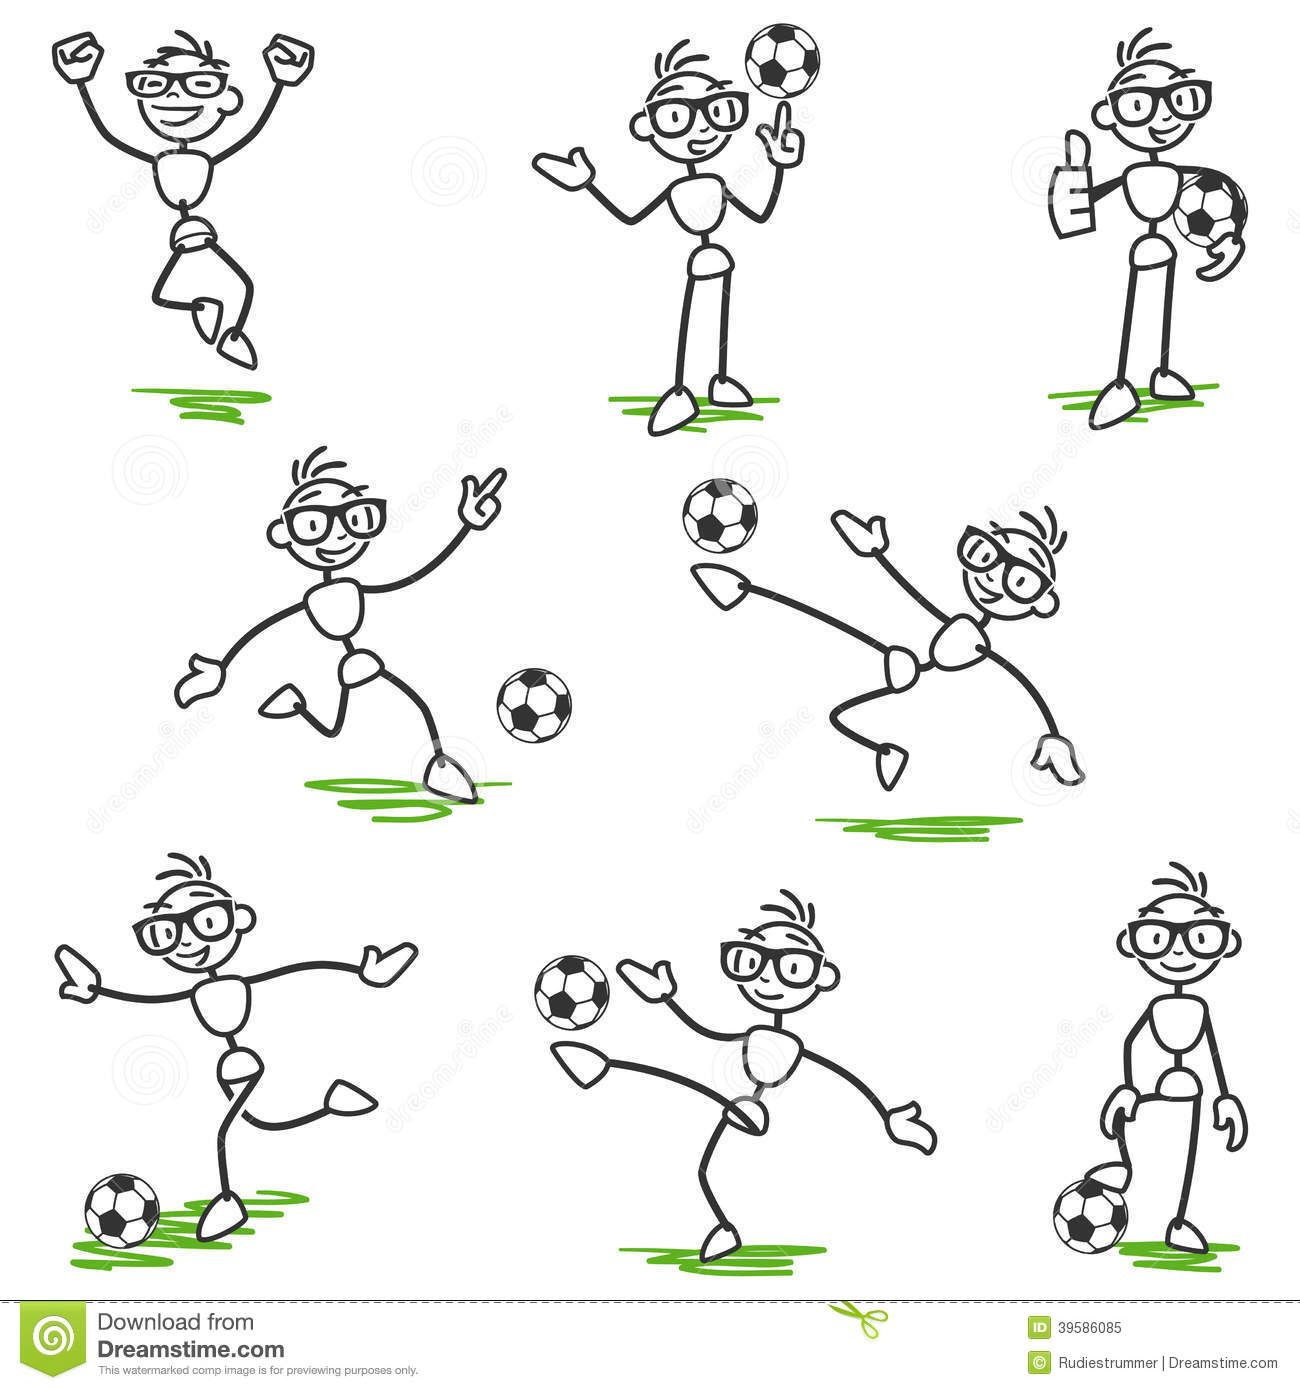 Image From Http Thumbs Dreamstime Com Z Stick Figure Stickman Soccer Football Player Set Vector Figures Pla Stick Figures Stick Figure Drawing Demon Drawings [ 1390 x 1300 Pixel ]